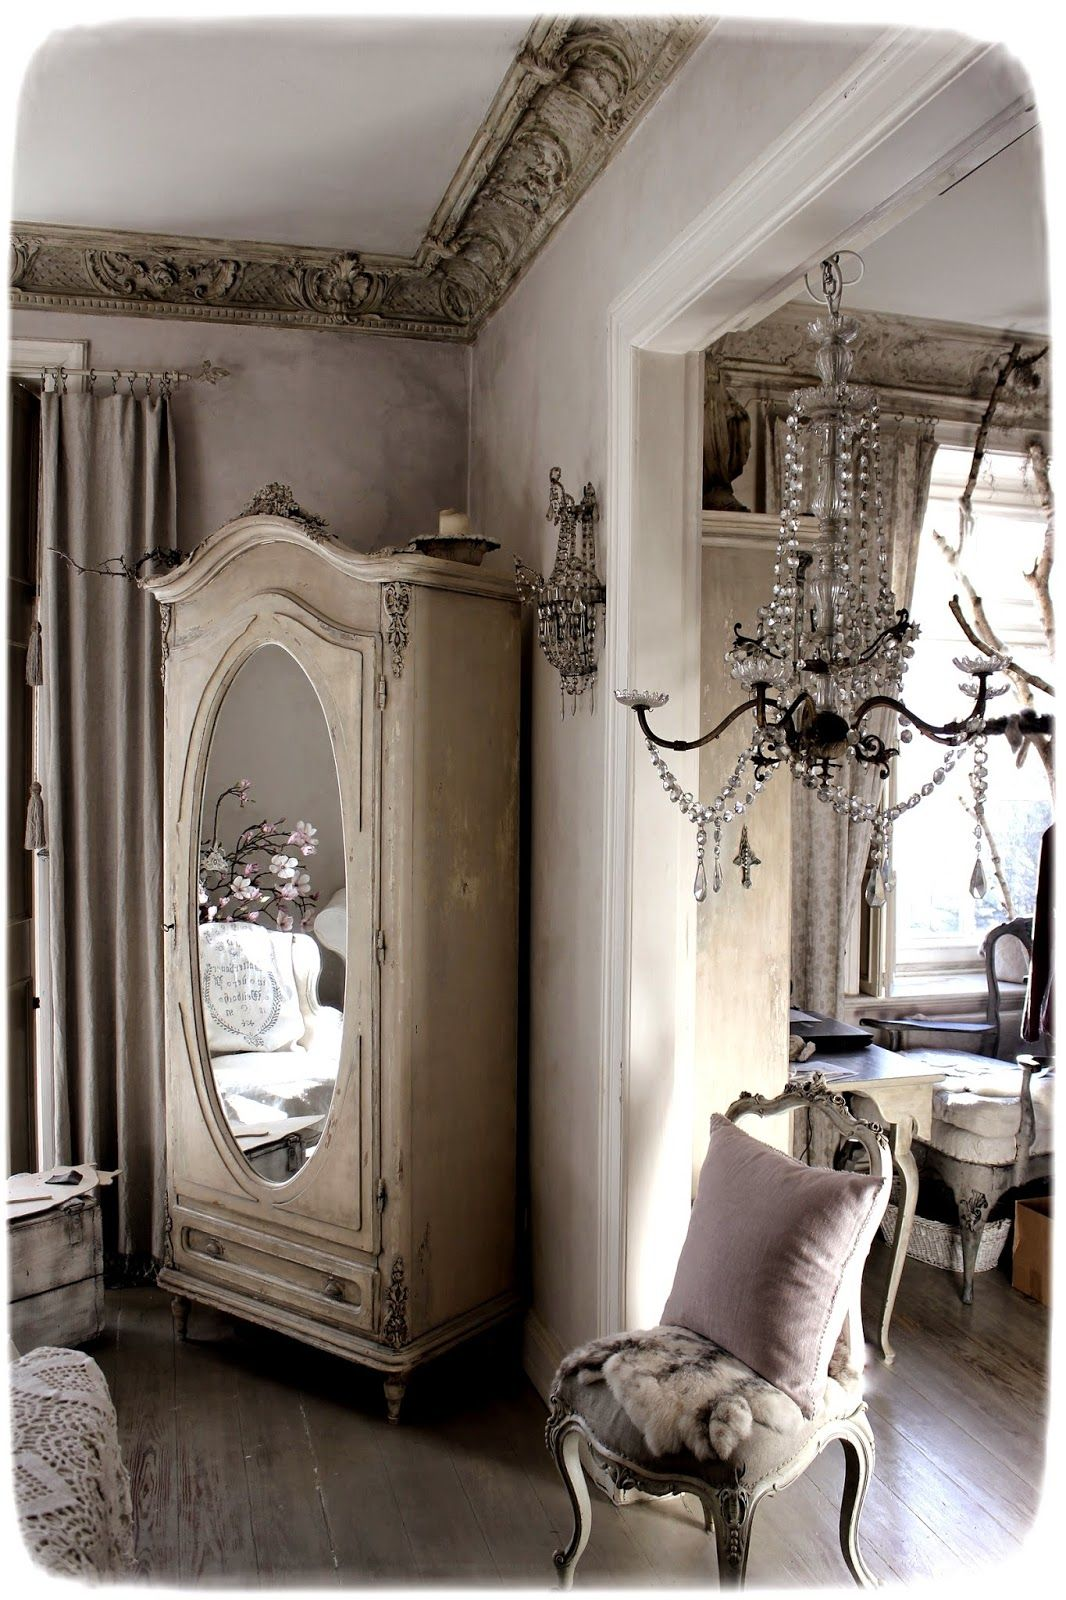 Méas Vintage And So Very French! #decor #interiors